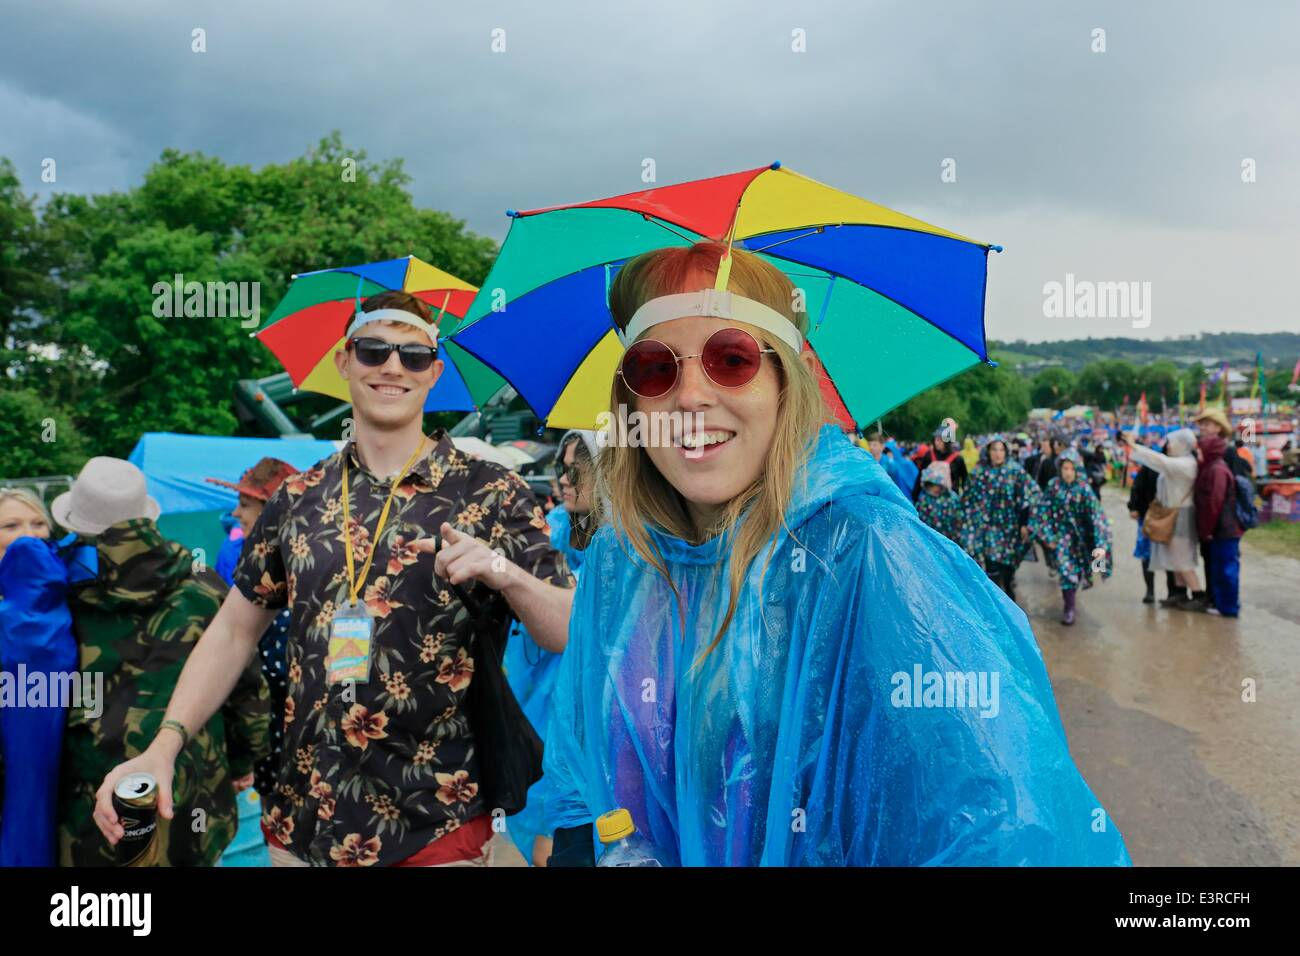 Glastonbury Festival, Pilton, Glastonbury, UK. 27th June 2014. Crowds make their way to shelter through heavy rain, - Stock Image